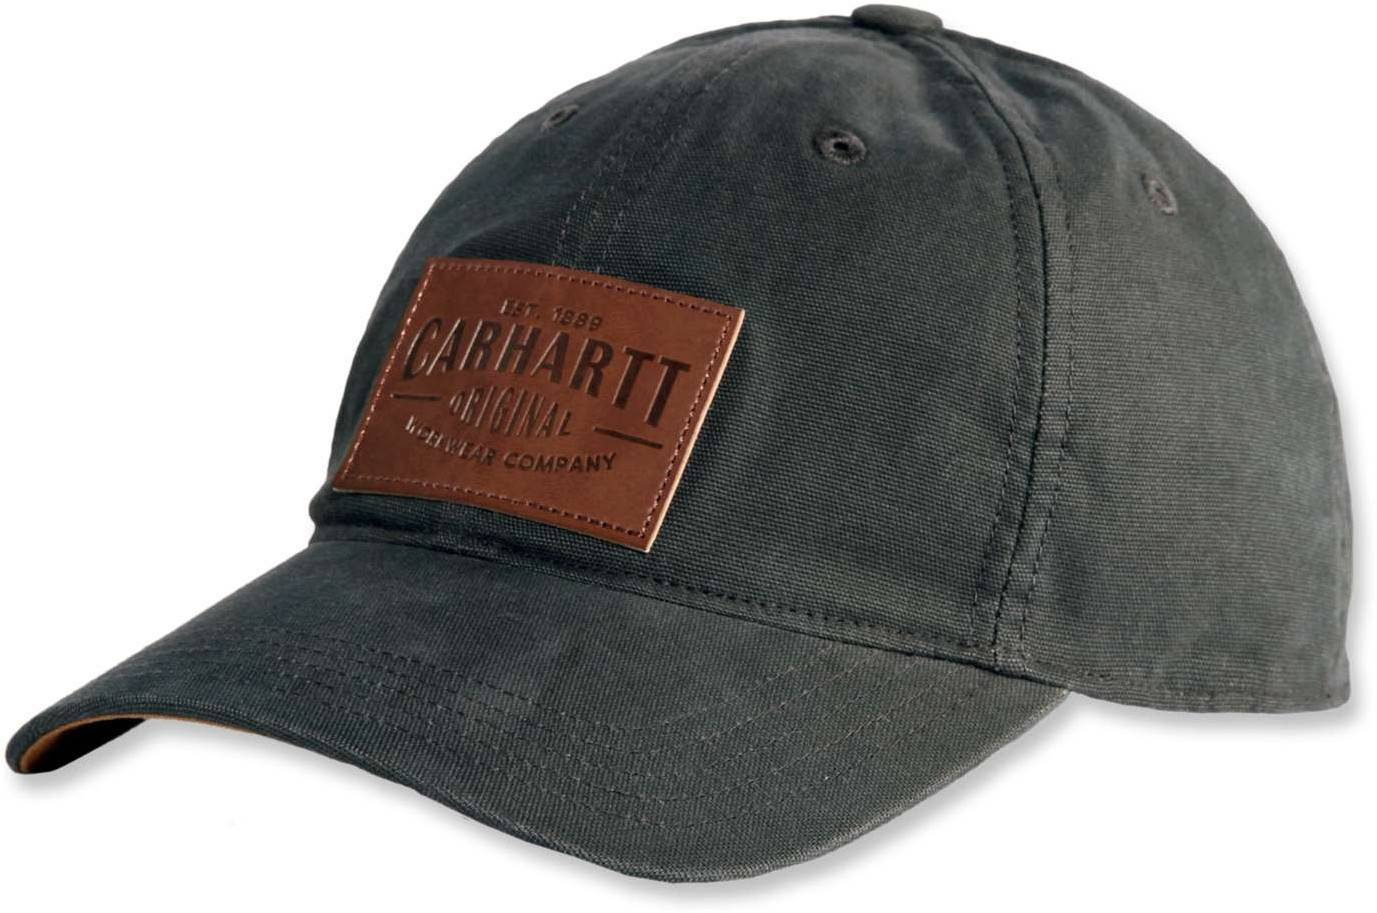 Carhartt Rigby Cap  - Size: Large